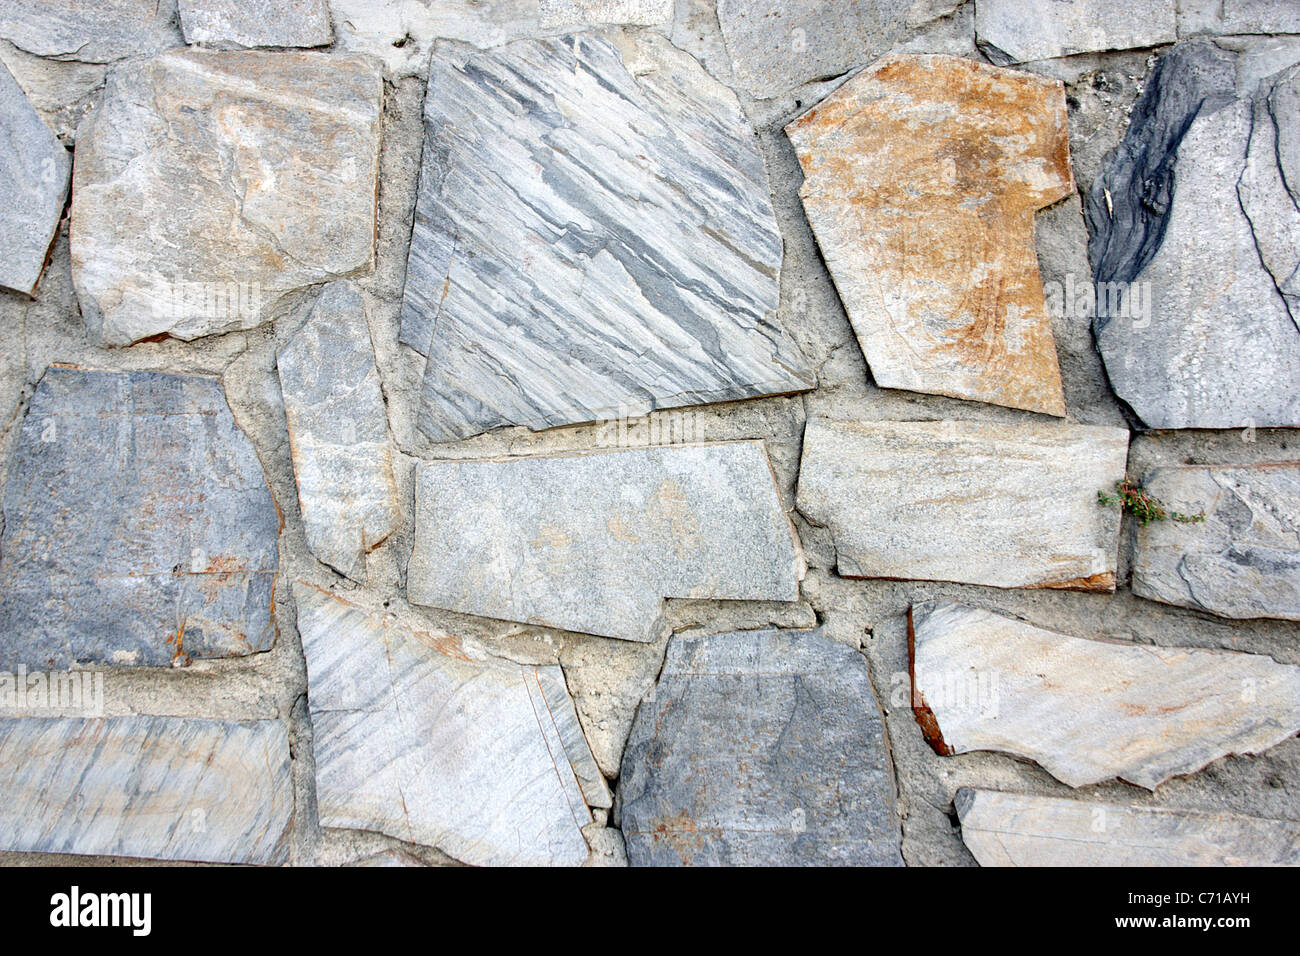 Fund of screen of a wall of gray stones with brown tones in a point of attention. - Stock Image